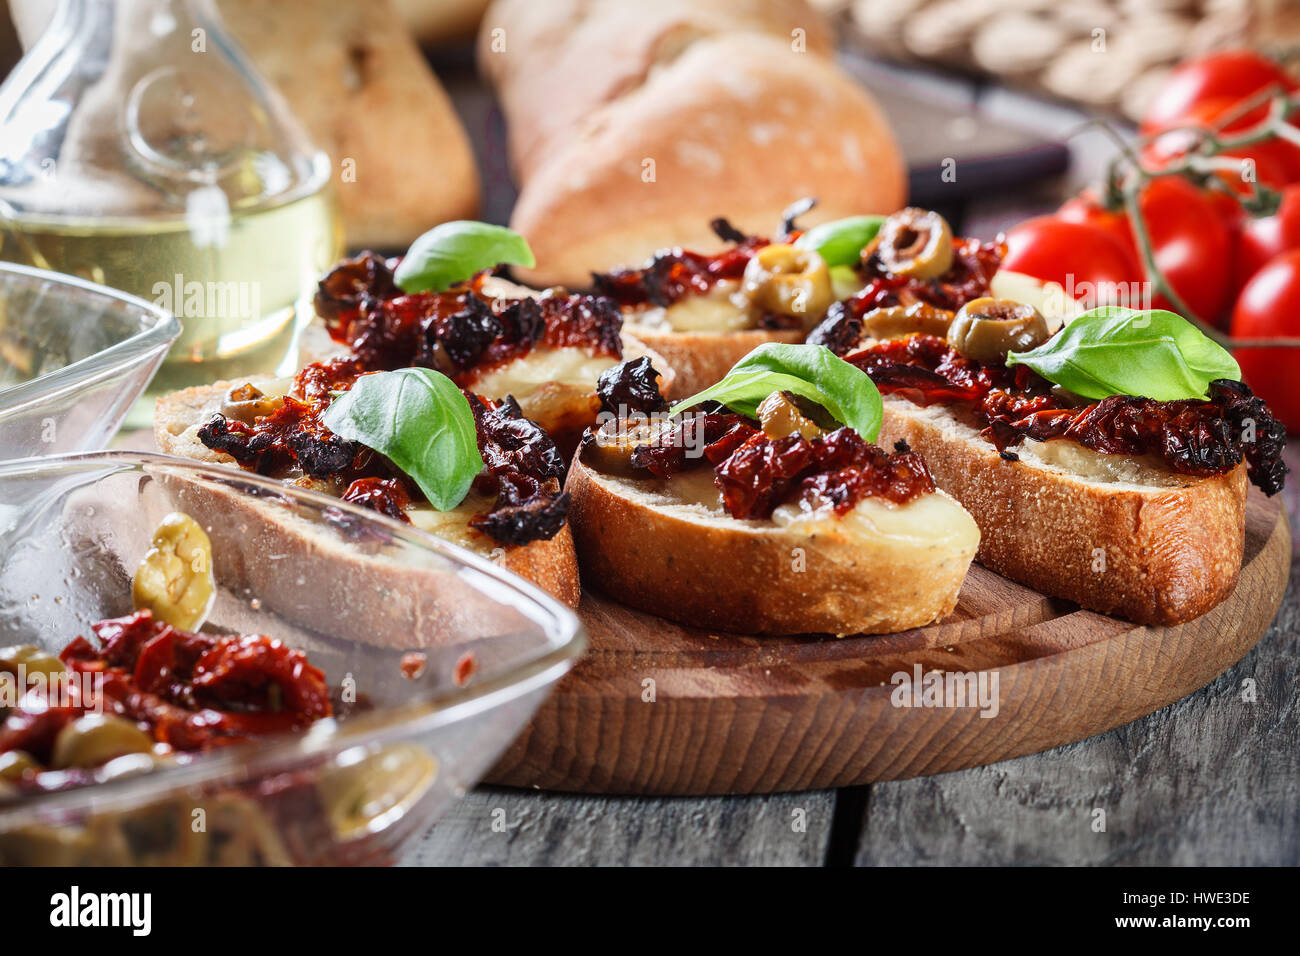 Appetizer bruschetta with sun-dried tomatoes, olives and mozarella. Italian cuisine - Stock Image